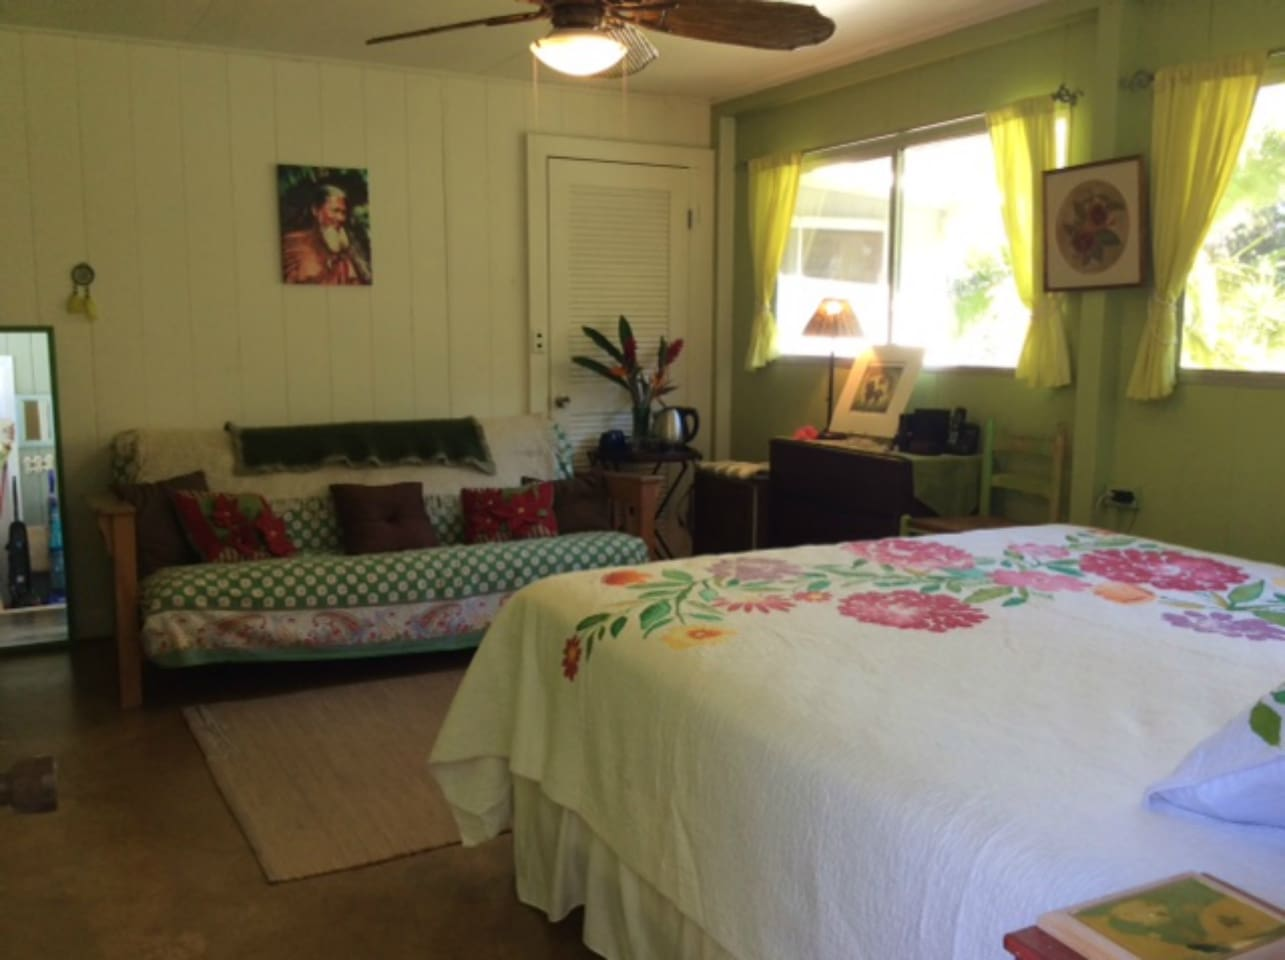 Green Room at papalani farm featuring king size bed and futon.